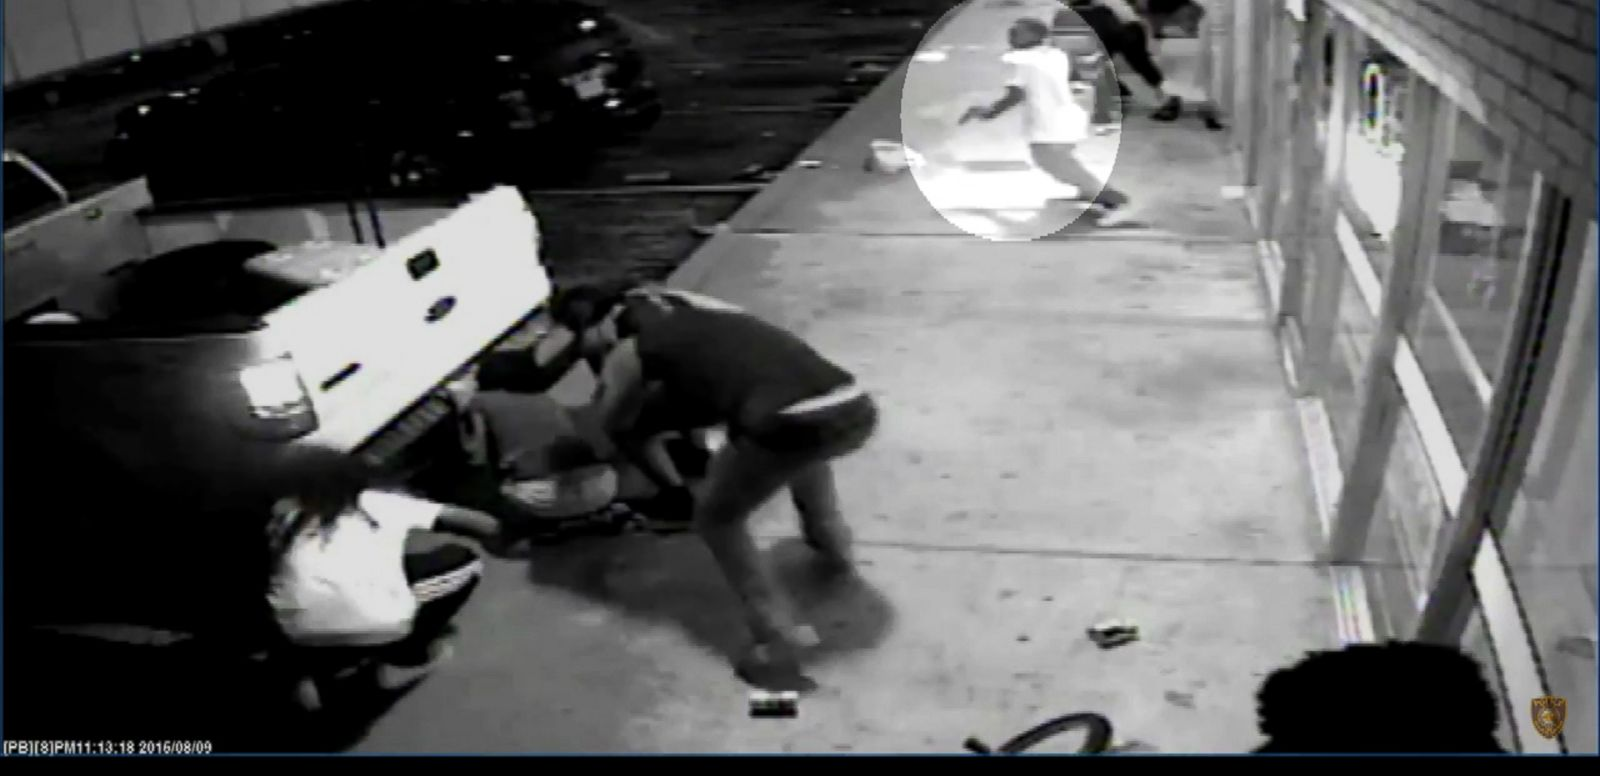 VIDEO: The St. Louis County Police Department released new surveillance video in the officer-involved shooting of Tyrone Harris on Aug. 9, 2015, which they say shows the 18-year-old grabbing a handgun out of his waistband.